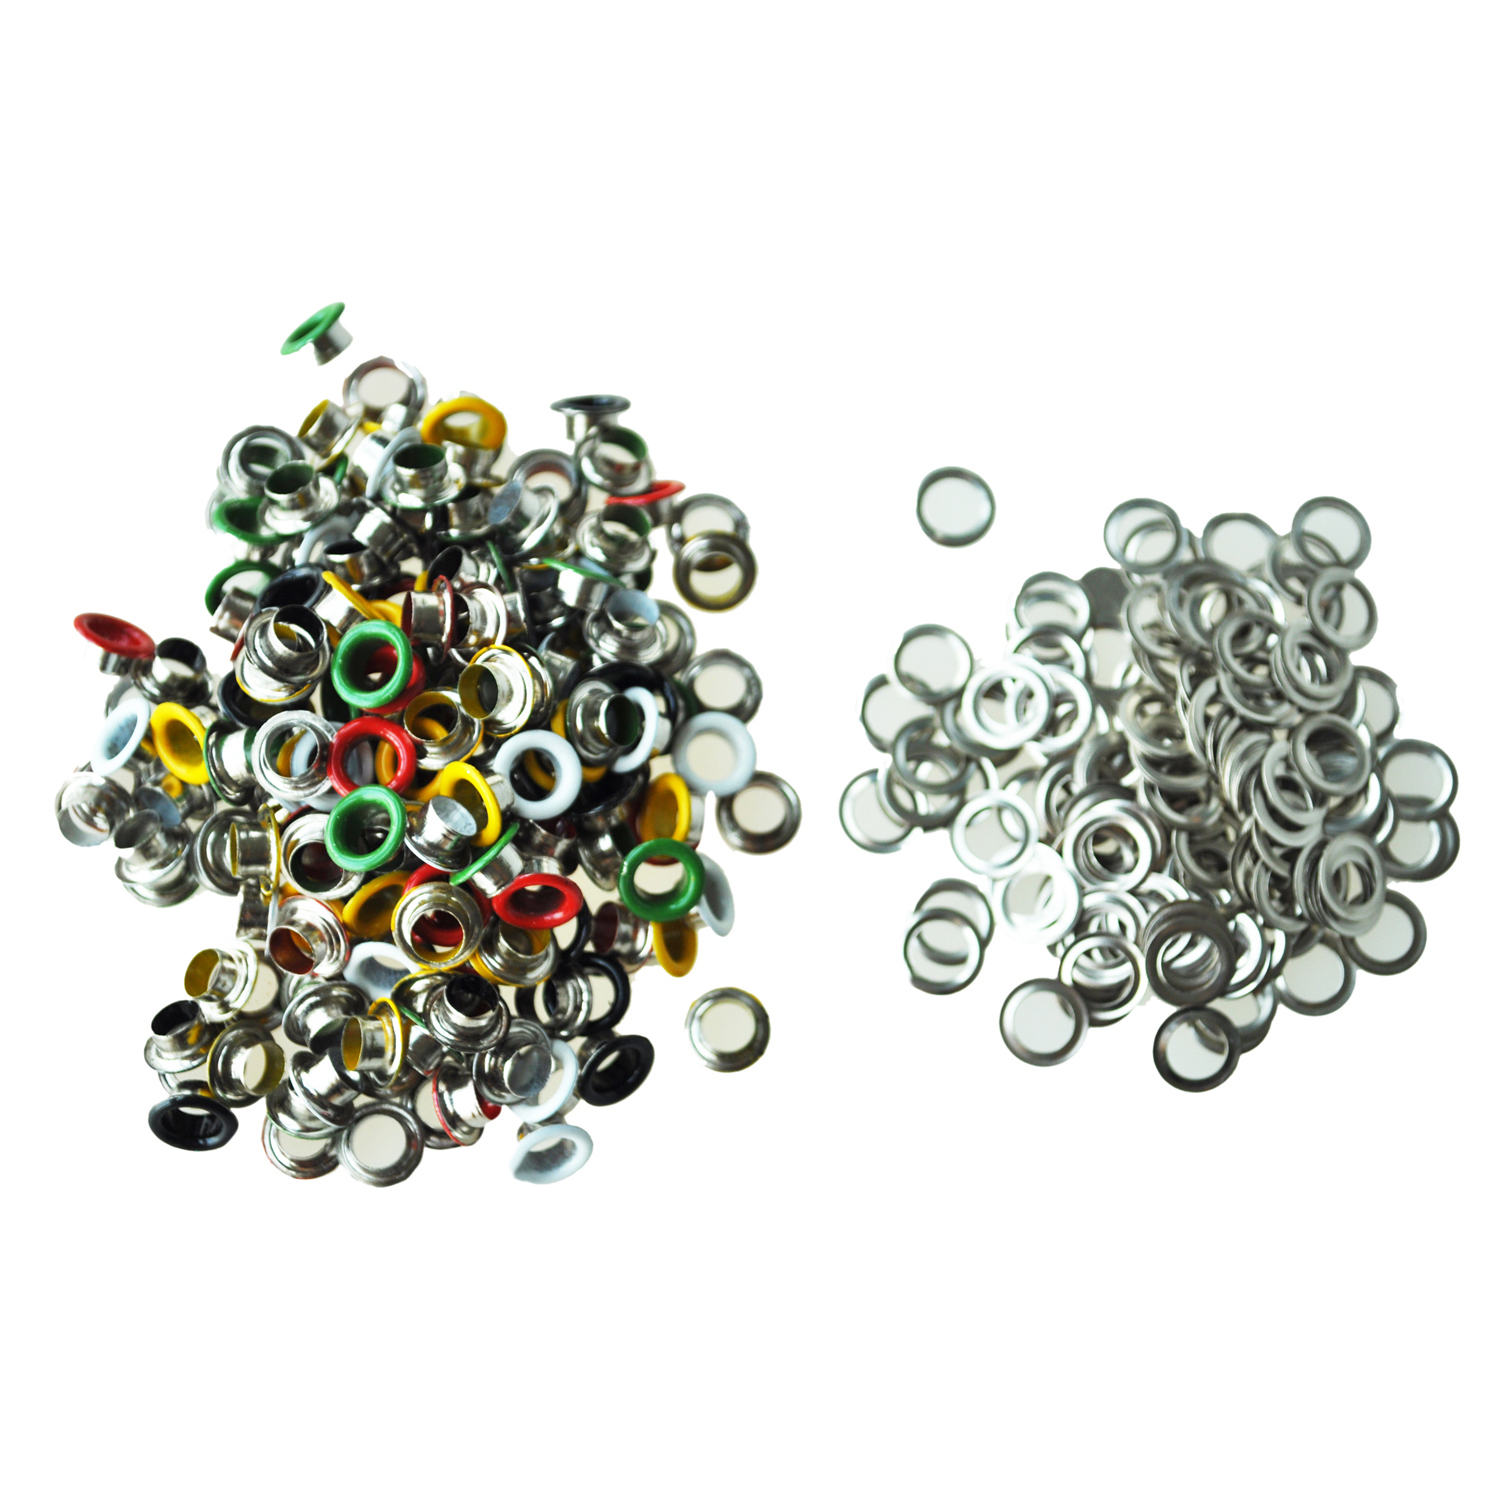 Botique 200 pcs Metal Colorful Round Eyelets Rivets Mixed Colors 9 mm